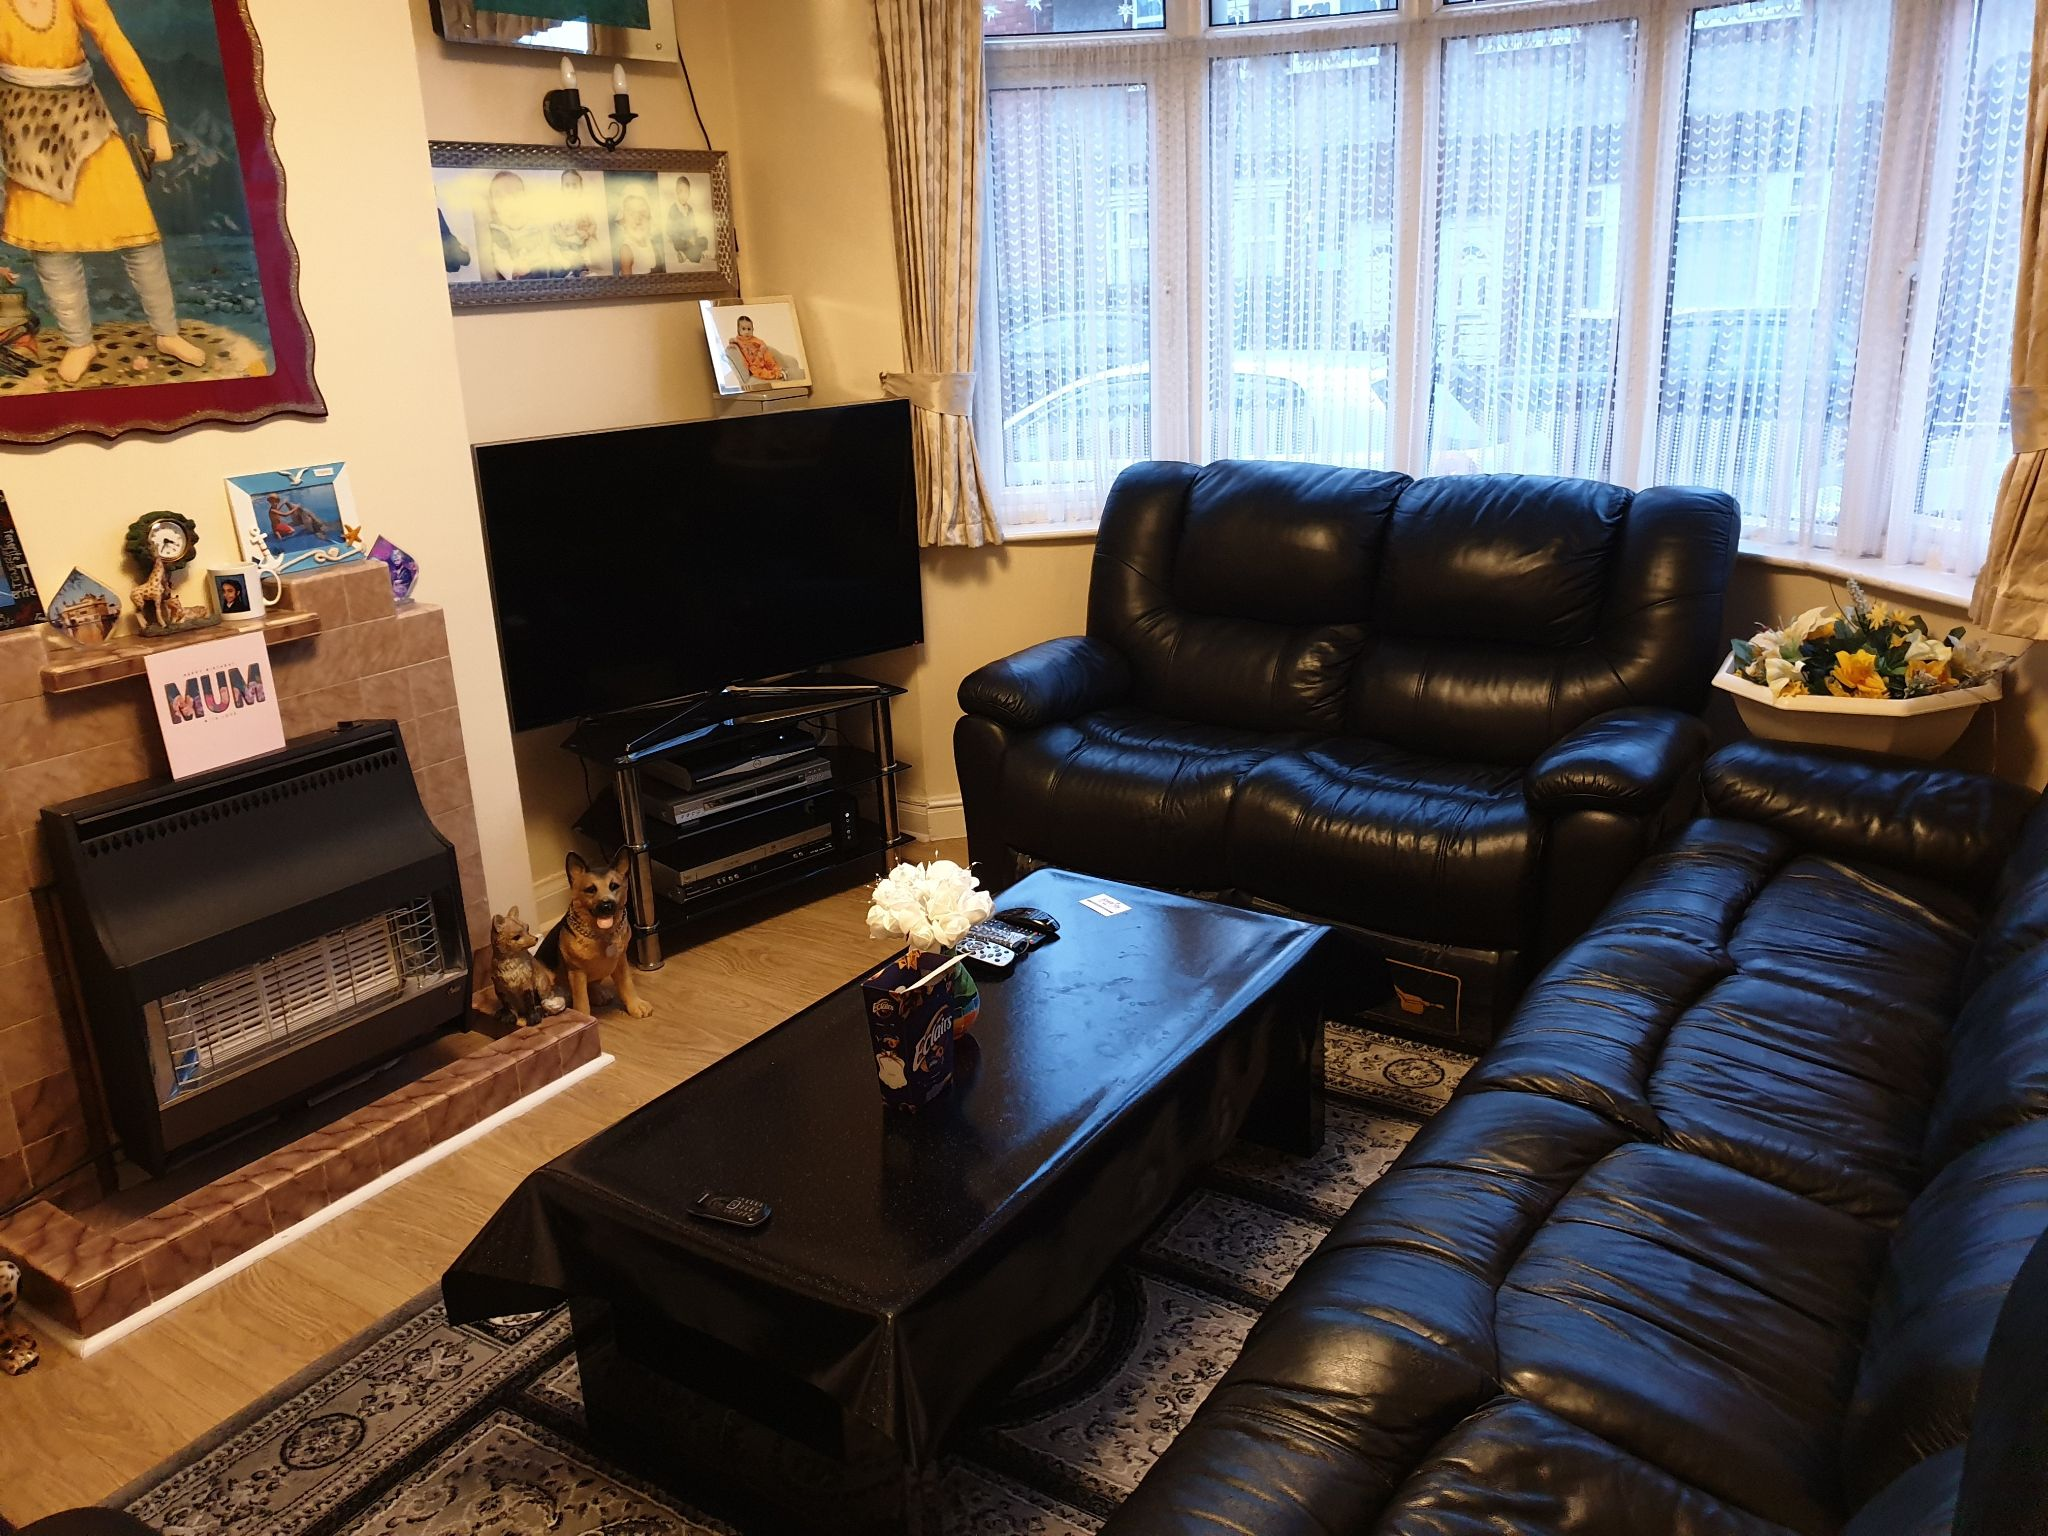 3 Bedroom Semi-detached House For Sale 35 Marston Road Image 2